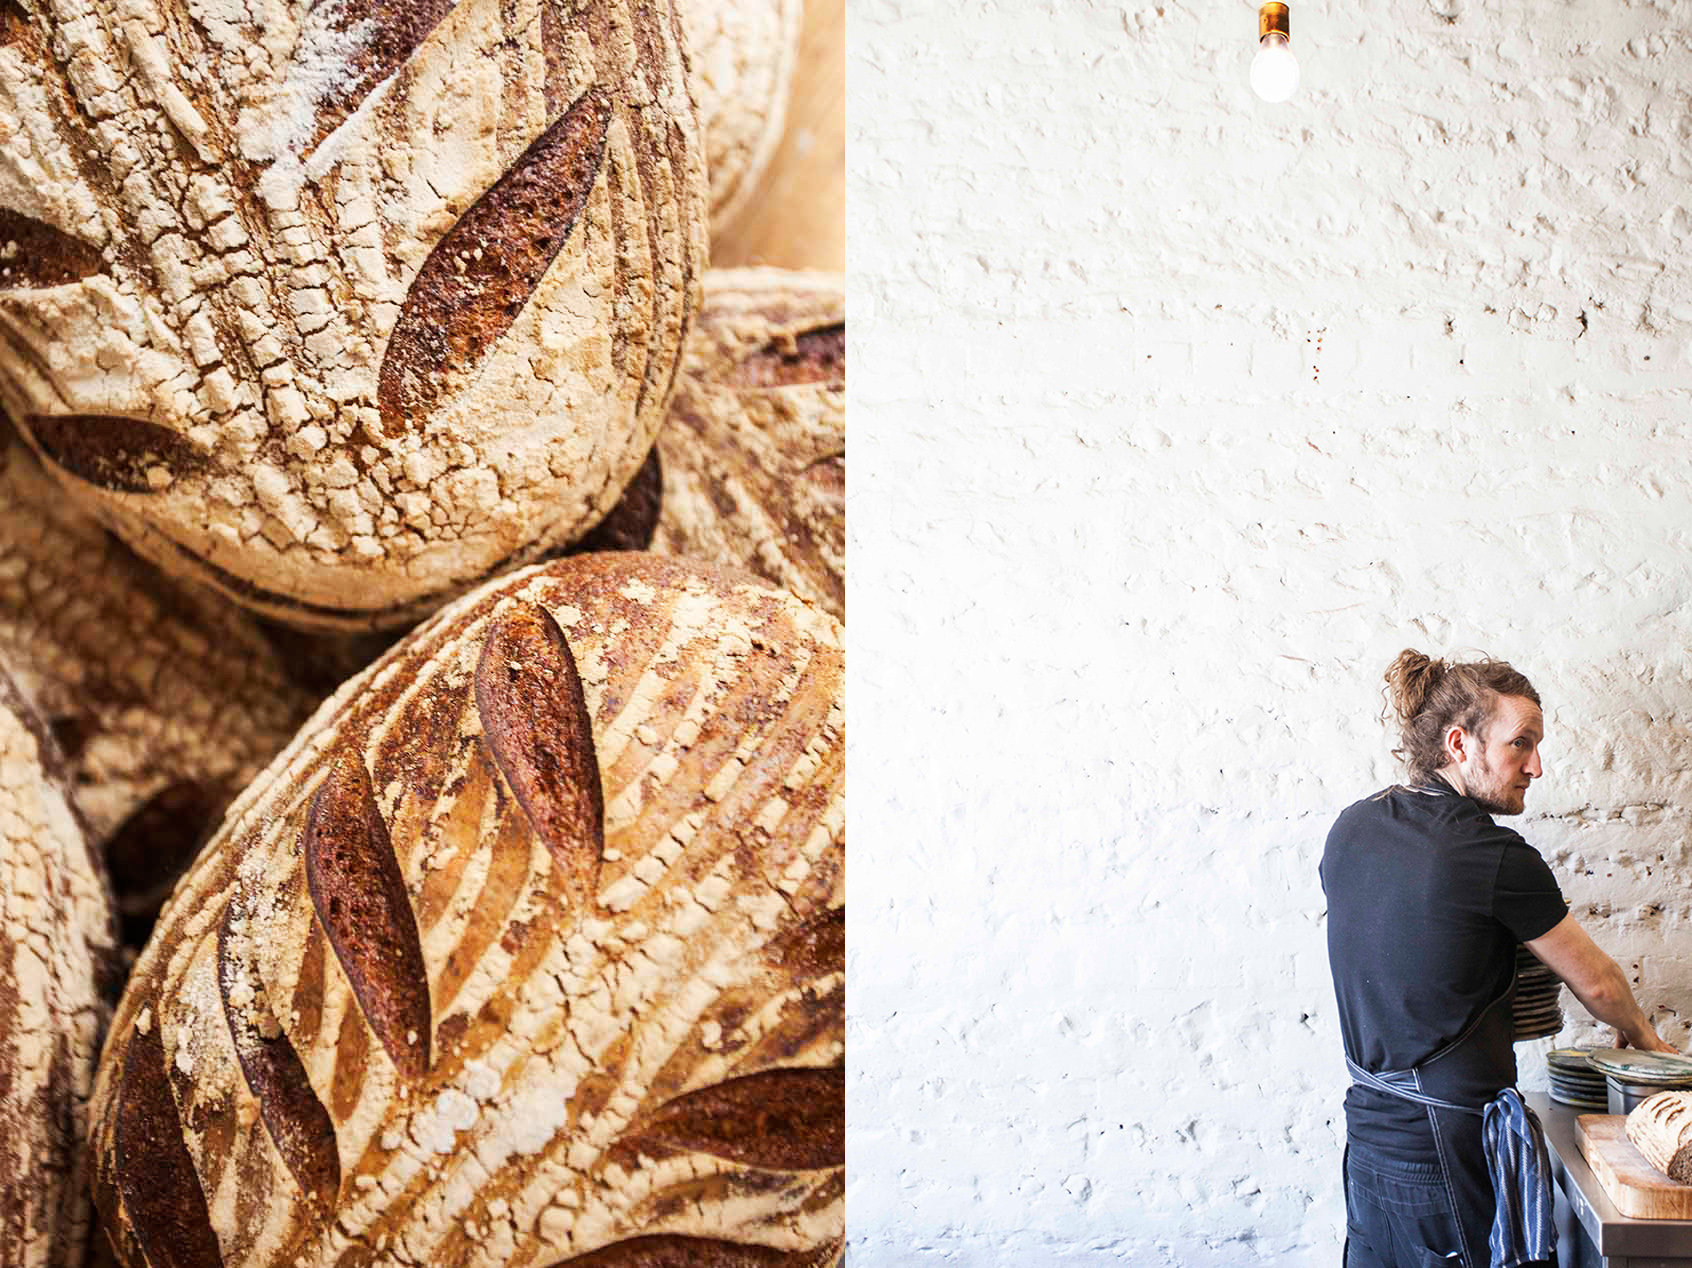 Silo's Sourdough & owner Douglas McMaster